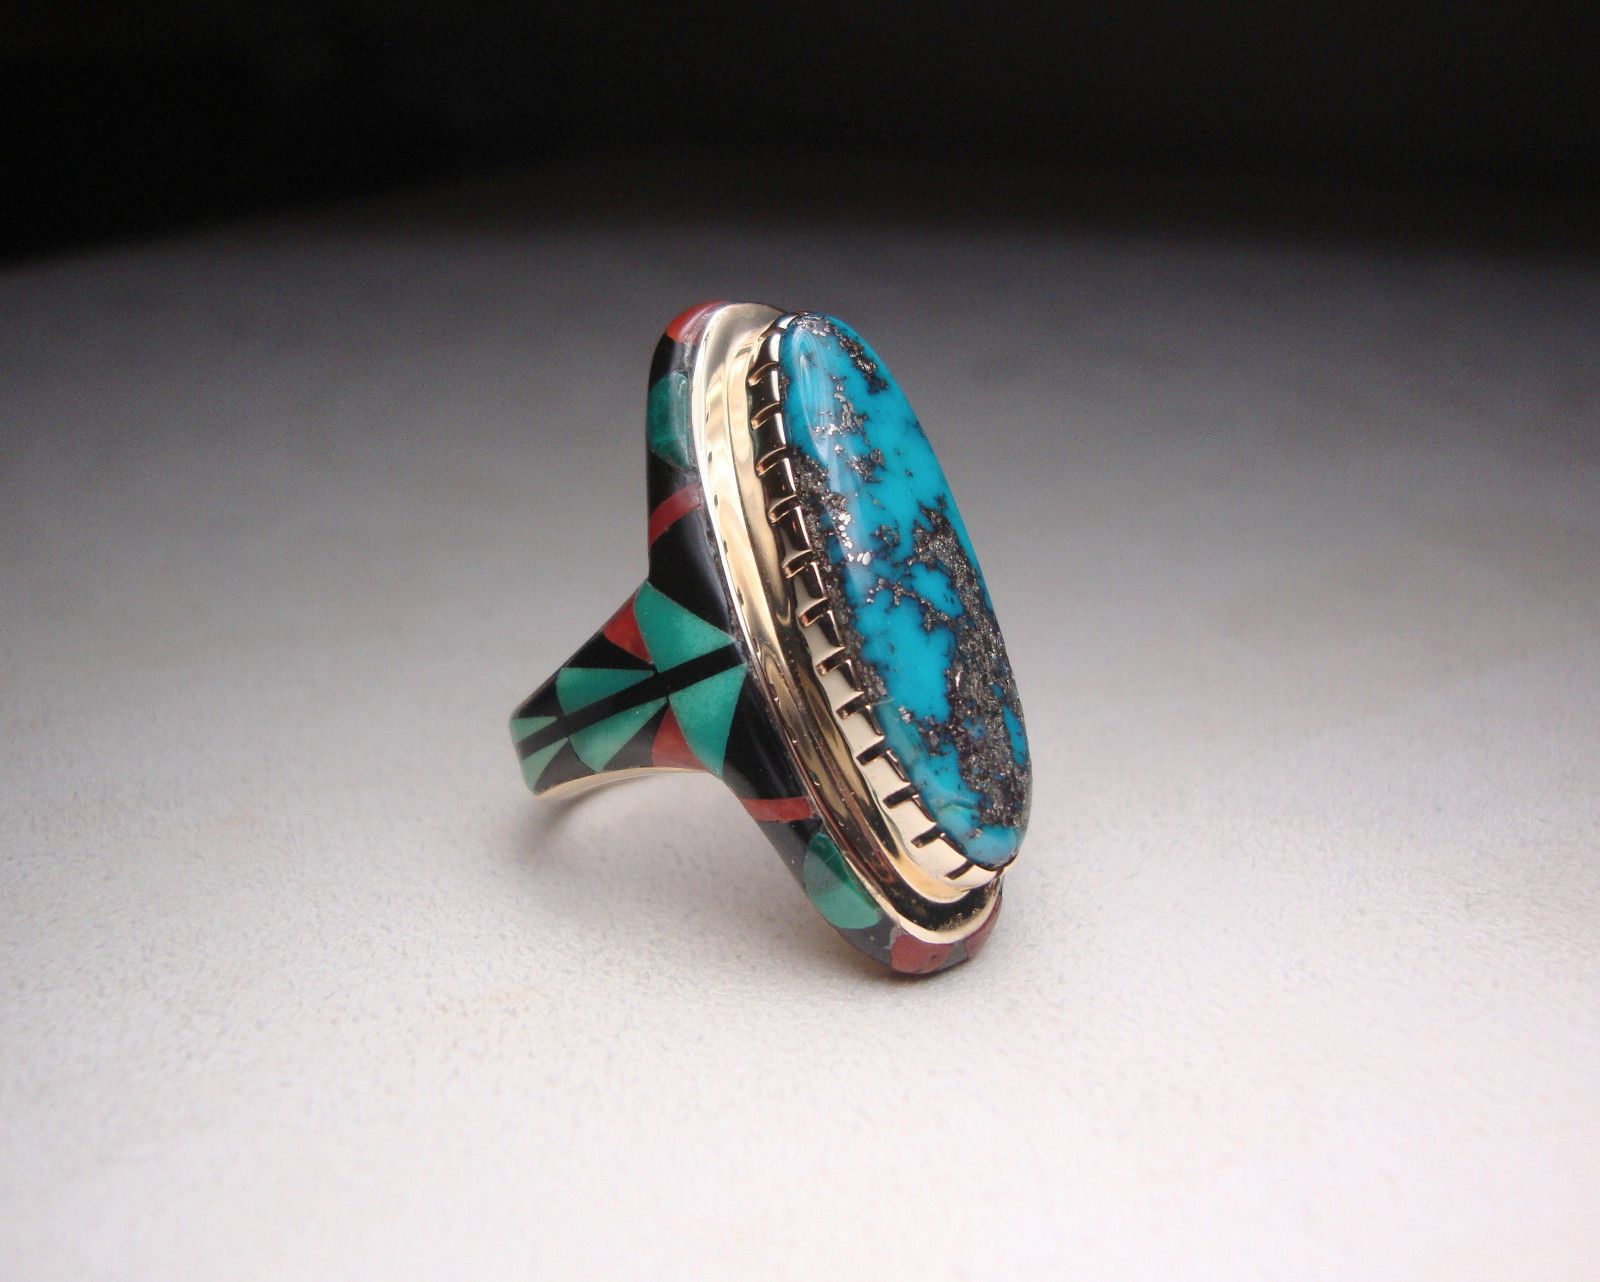 14K Gold Ervin Hoskie Diné Navajo Intarsia Inlay Turquoise Ring ...